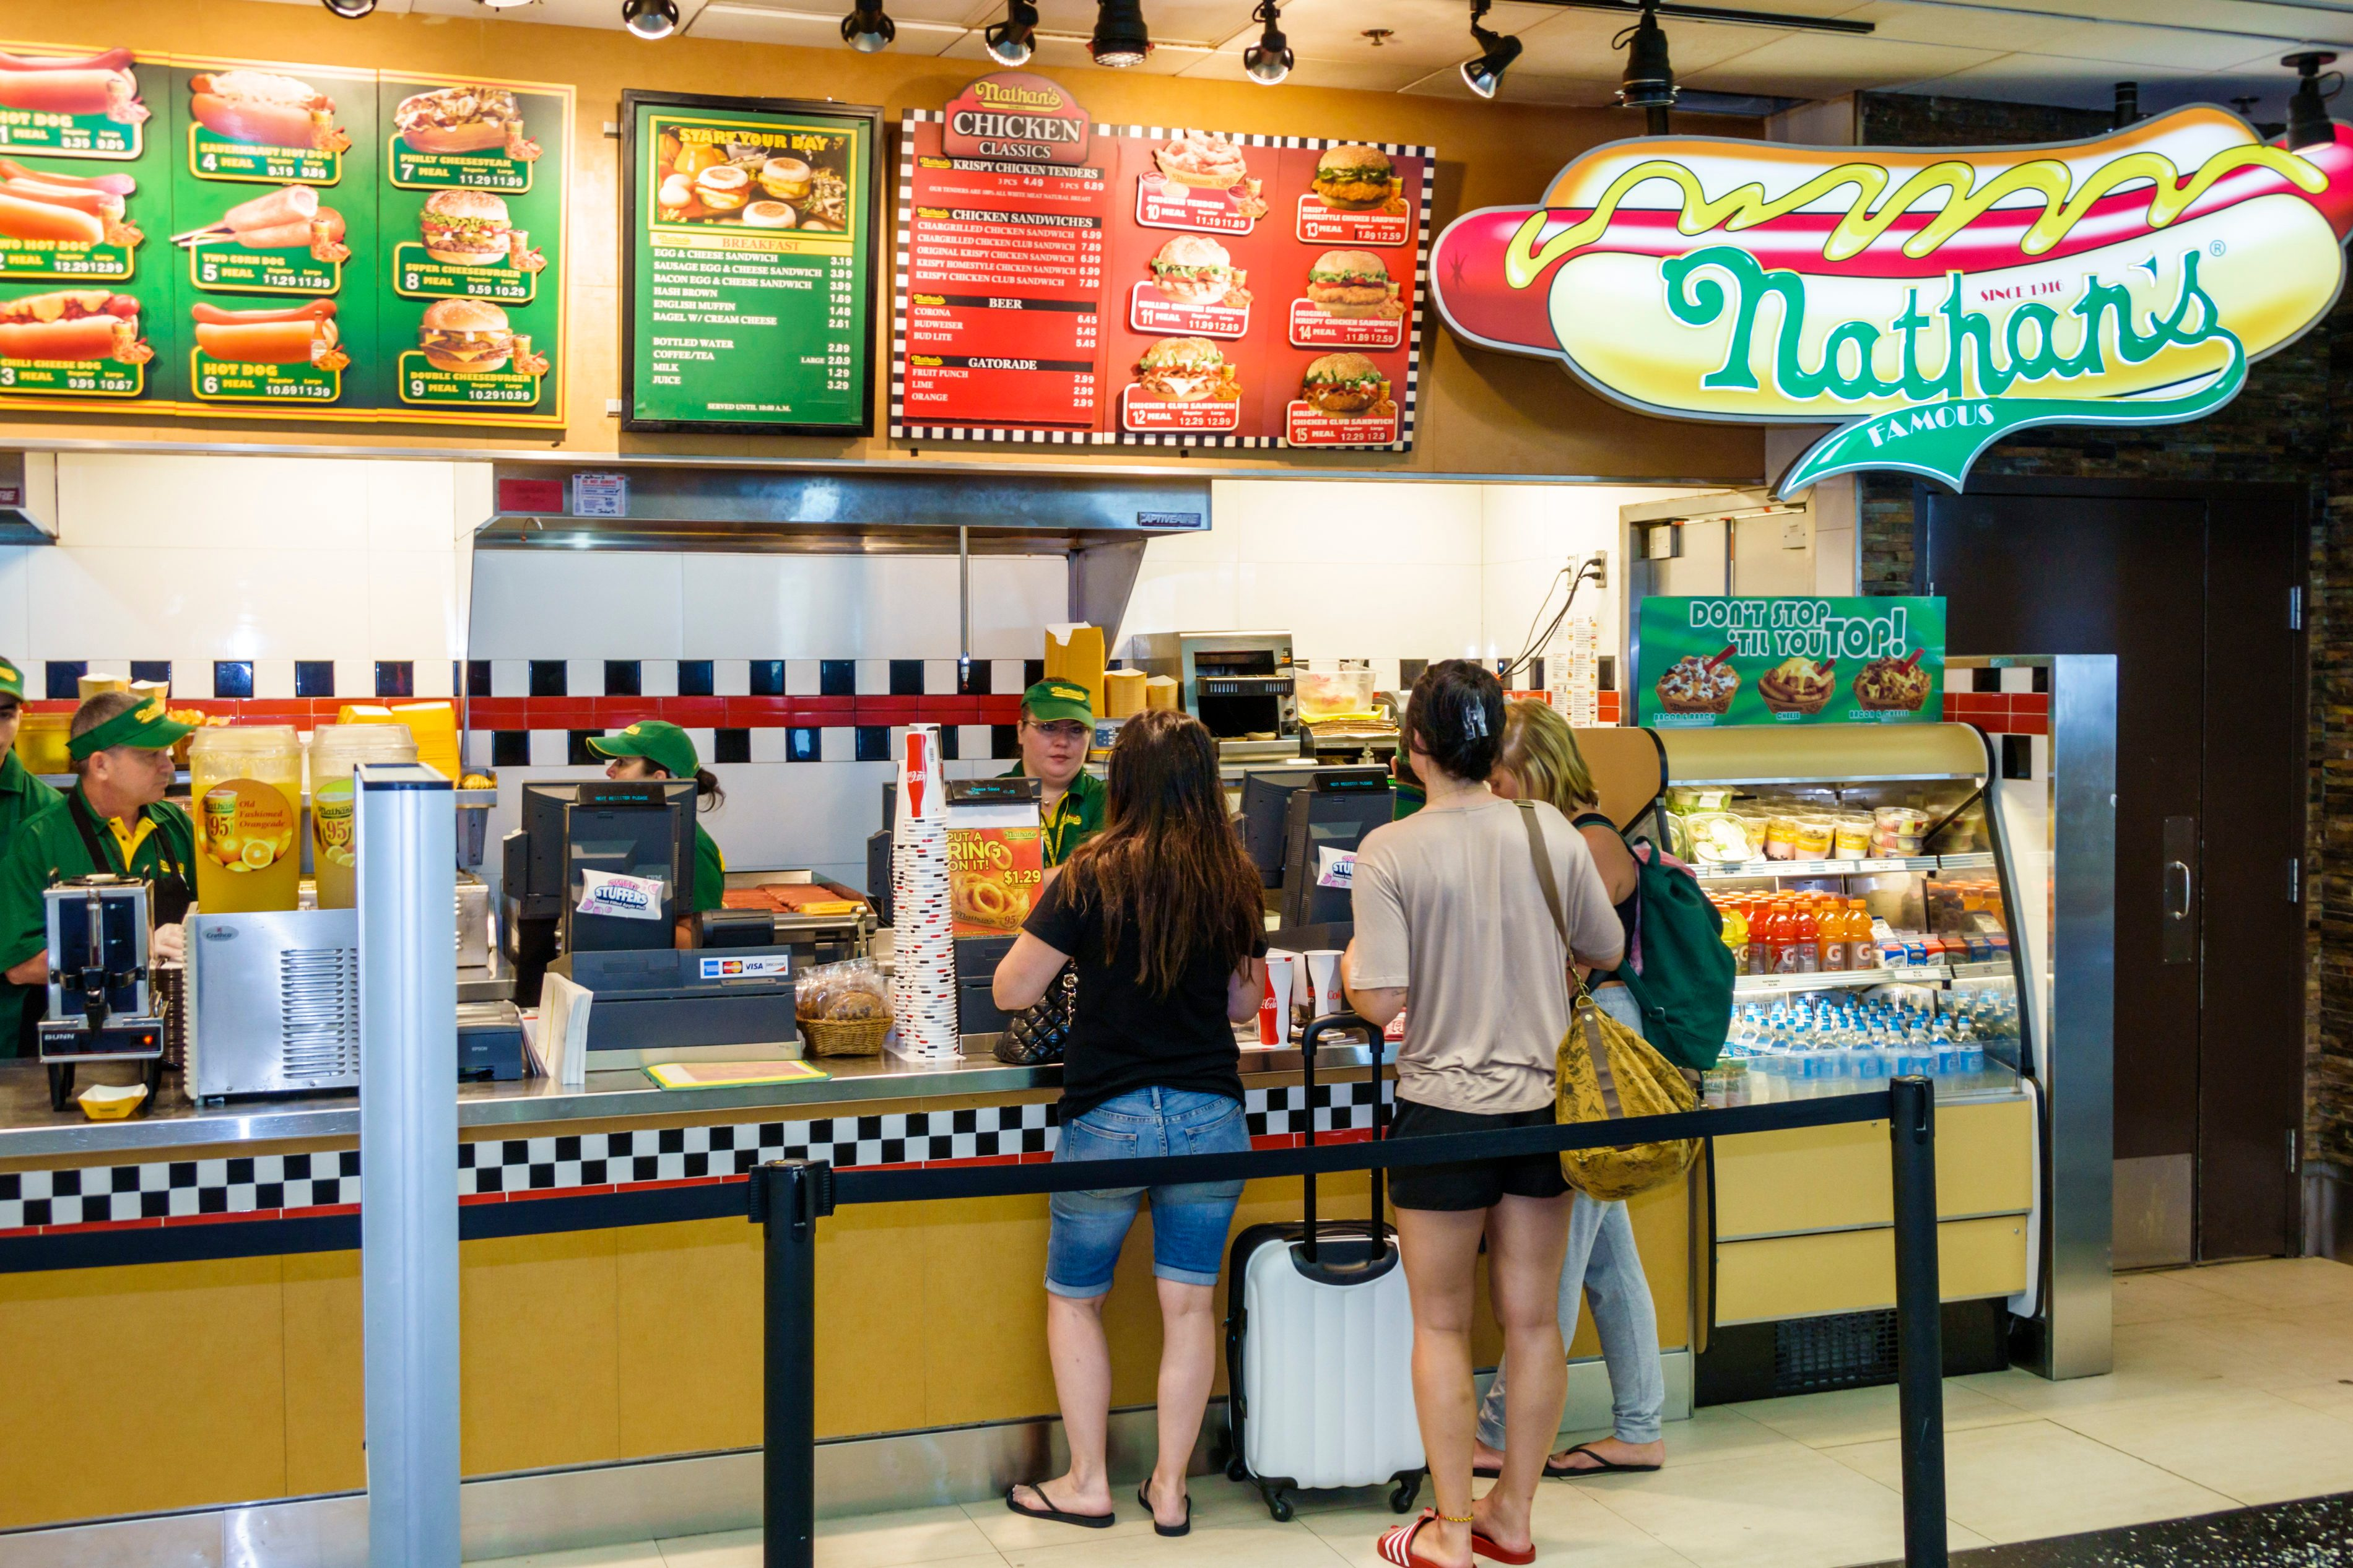 Nathan's Famous fast food hot dogs concession counter inside Miami International Airport.